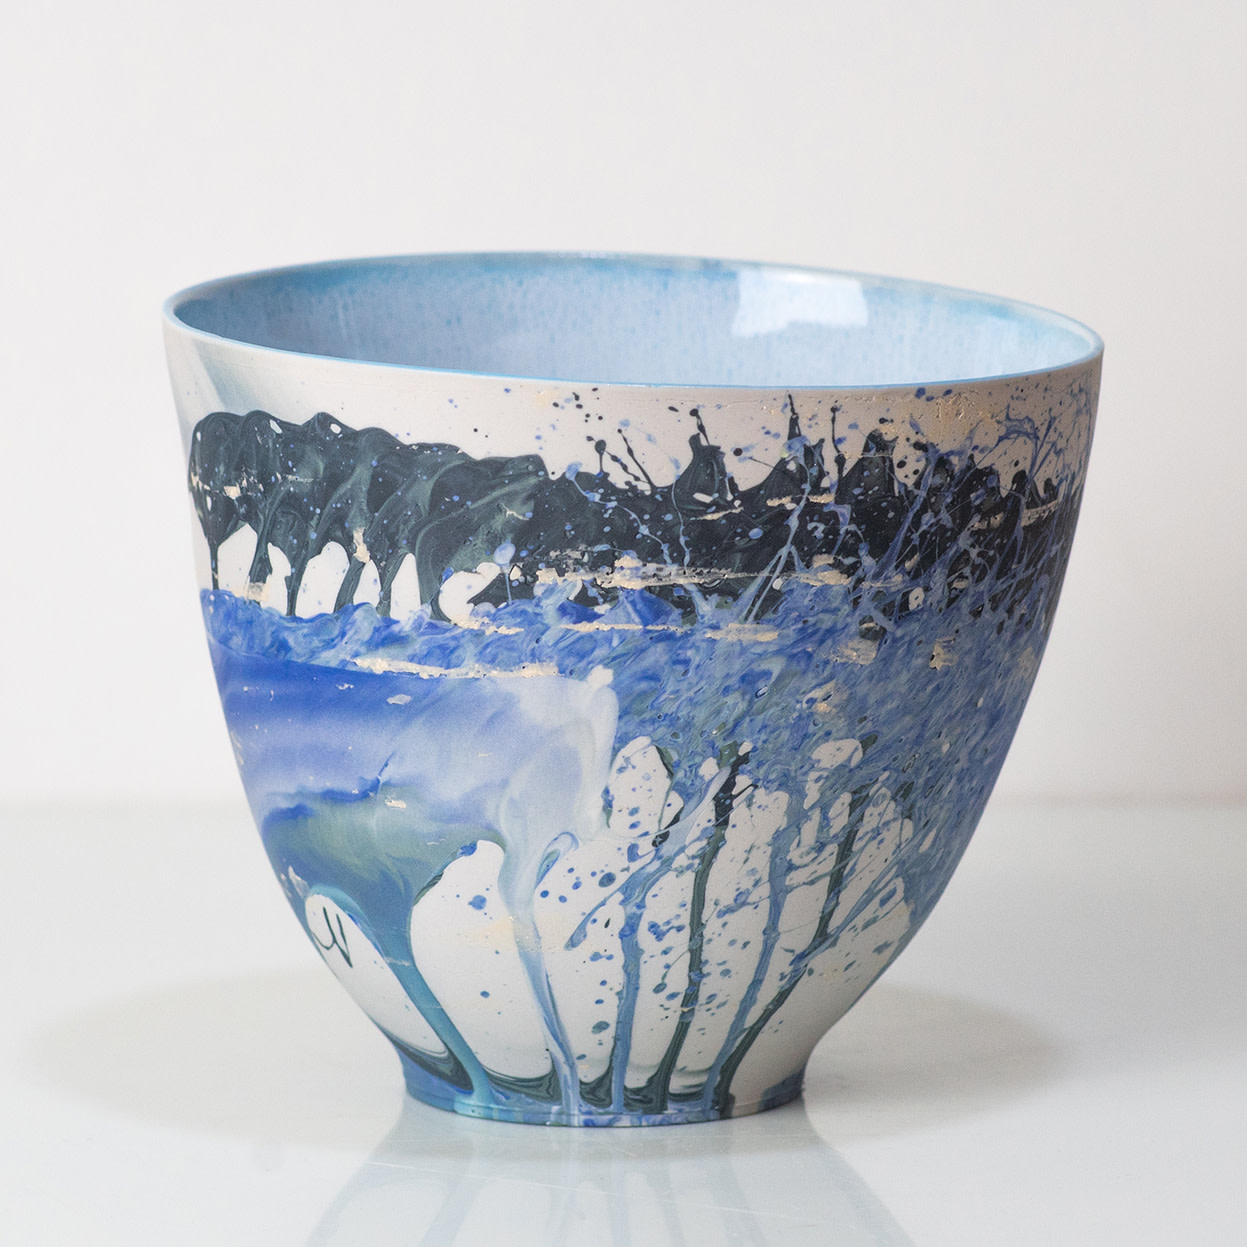 "<span class=""link fancybox-details-link""><a href=""/artists/219-james-pegg/works/6078-james-pegg-bowl-2019/"">View Detail Page</a></span><div class=""artist""><strong>James Pegg</strong></div> <div class=""title""><em>Bowl</em>, 2019</div> <div class=""medium"">action-cast stained porcelain with glazed interior</div> <div class=""dimensions"">h 13 cm, dia. 15 cm</div><div class=""copyright_line"">OwnArt: £ 14.50 x 10 Months, 0% APR </div>"